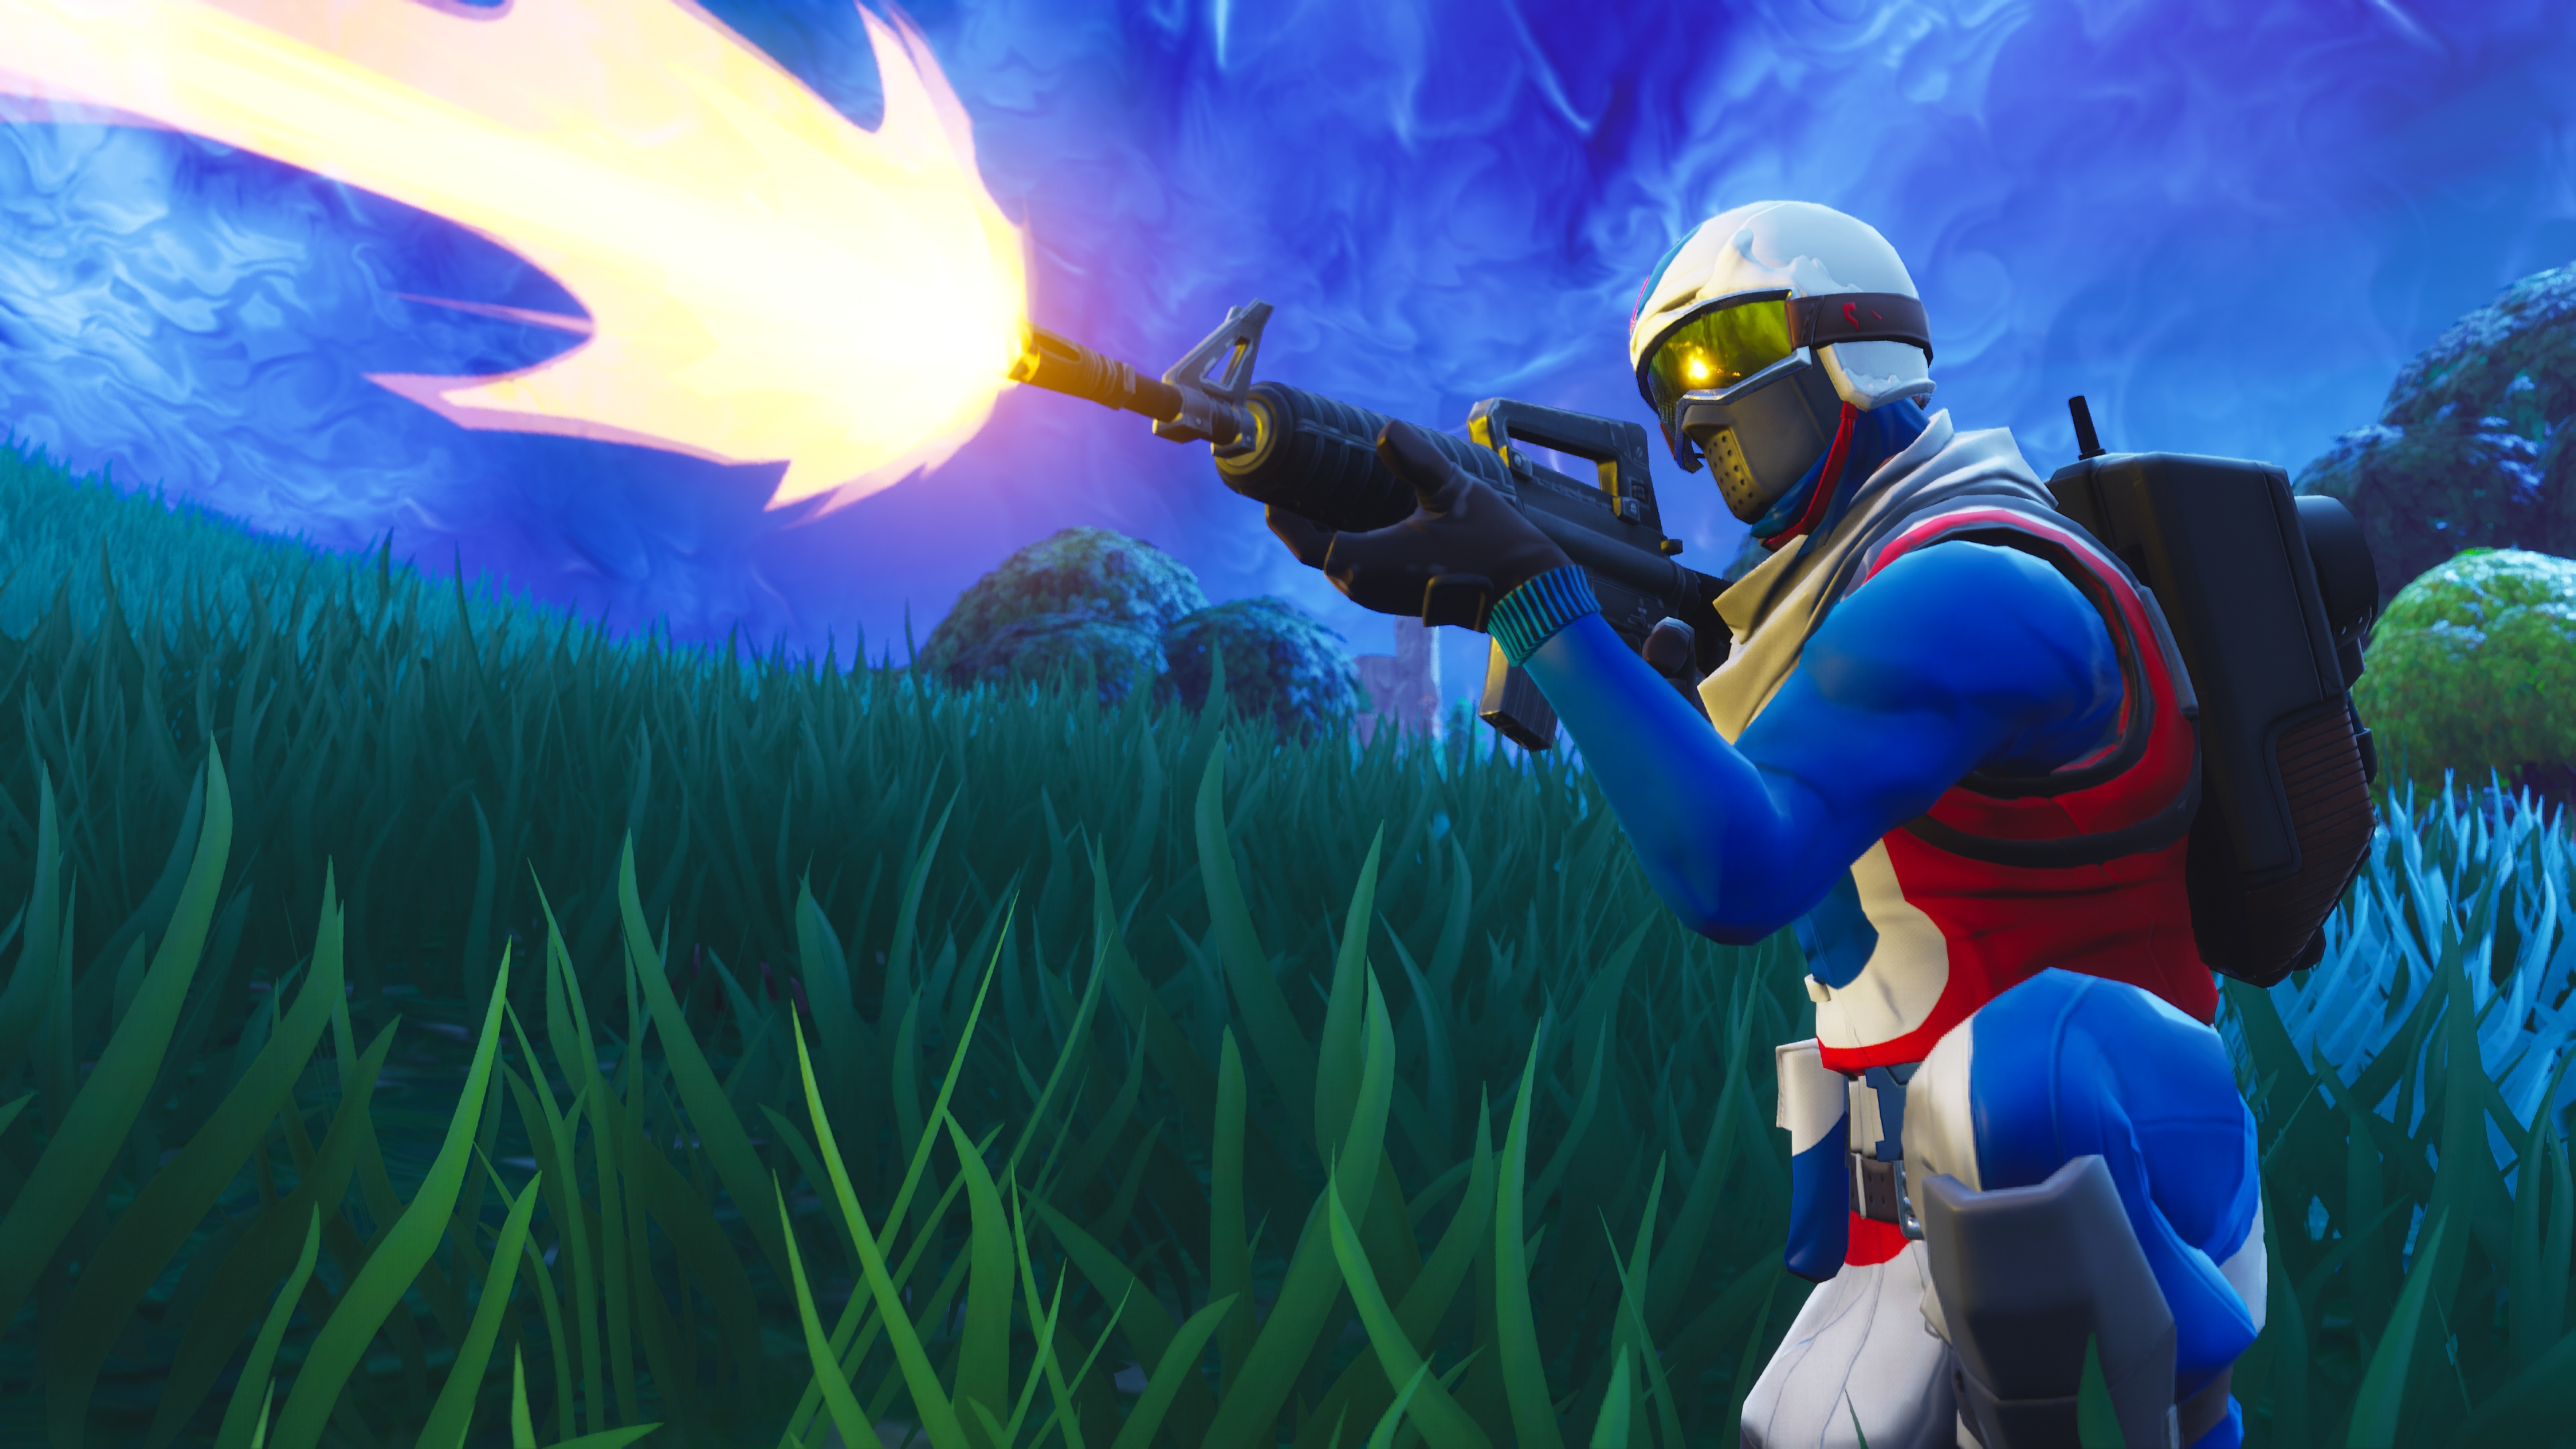 Fortnite background 127